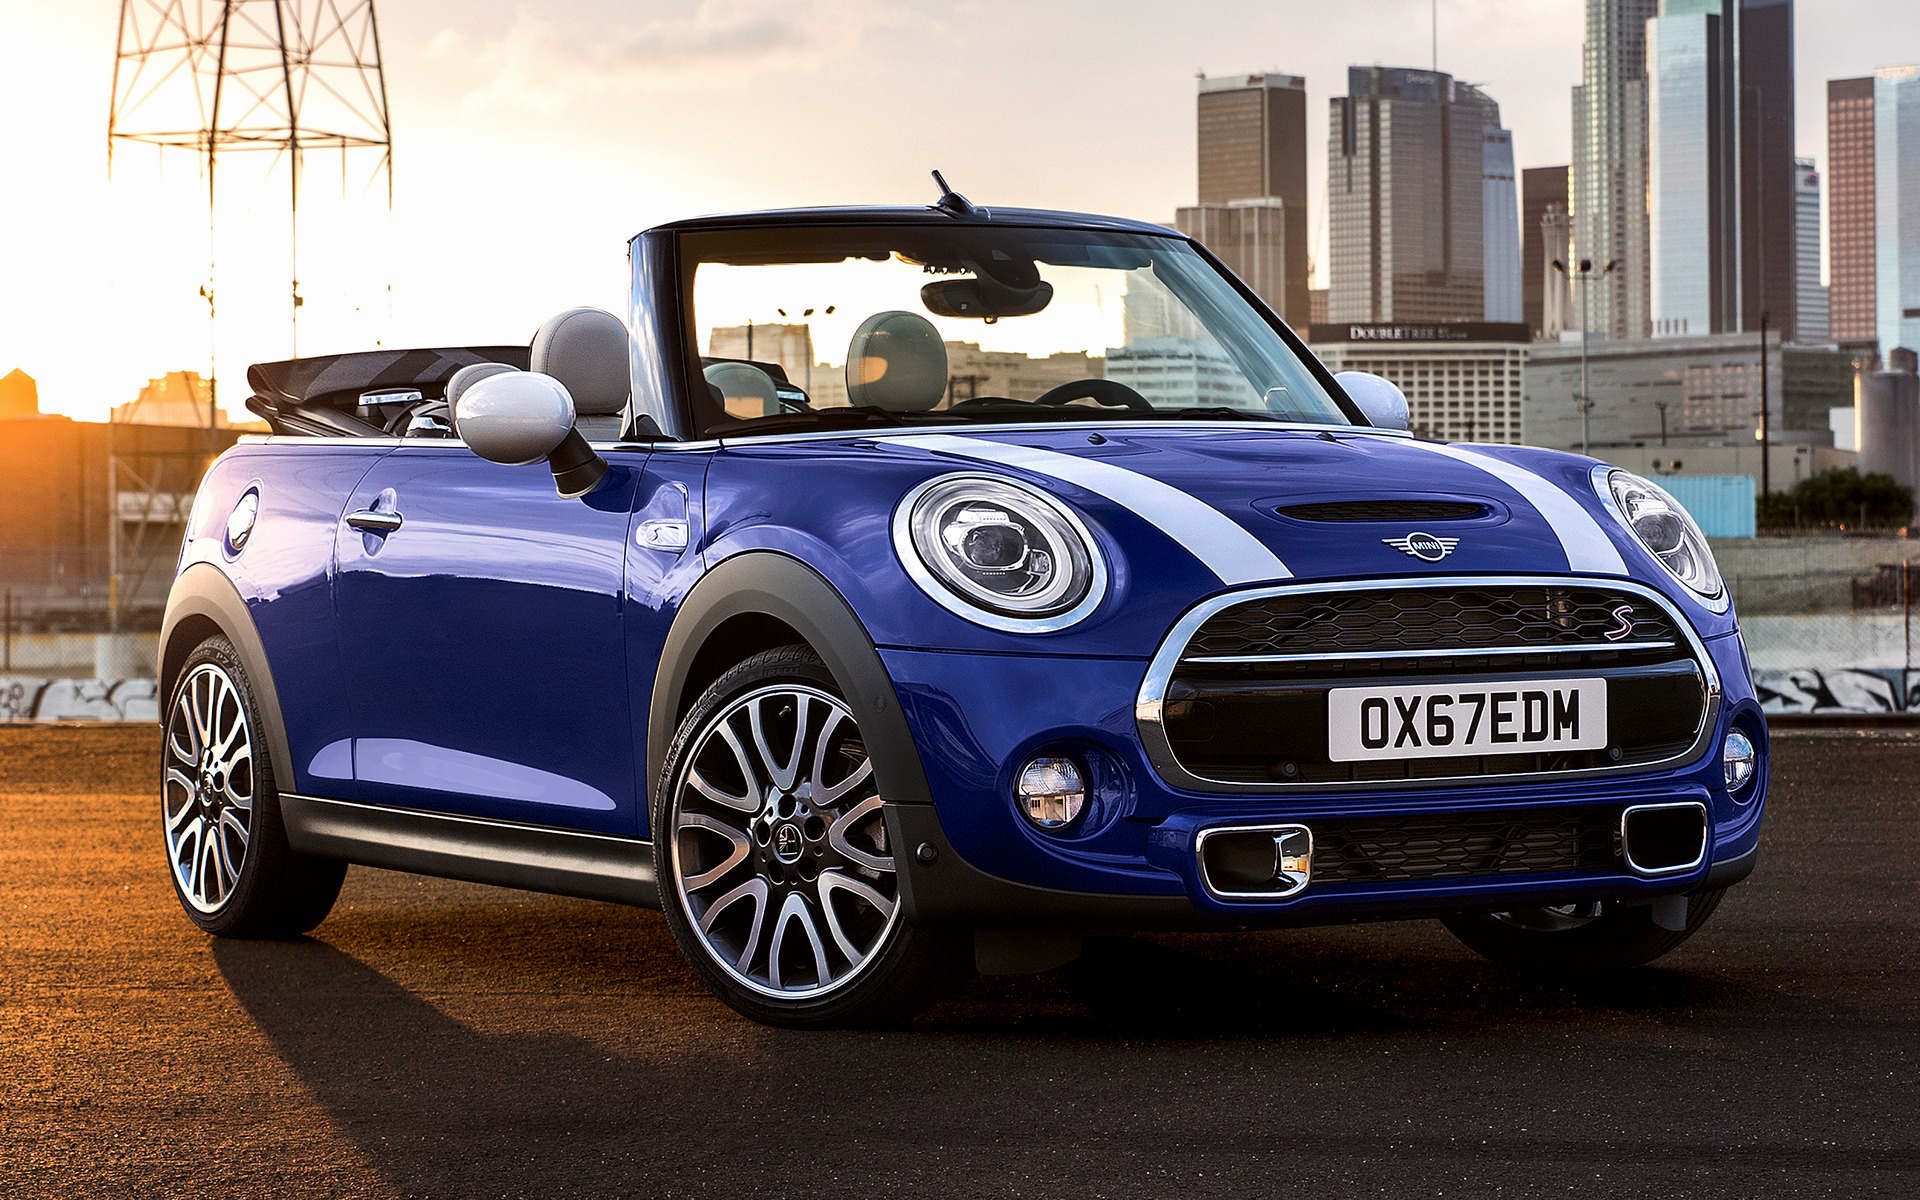 2018 mini cooper s cabrio wallpapers and hd images car. Black Bedroom Furniture Sets. Home Design Ideas